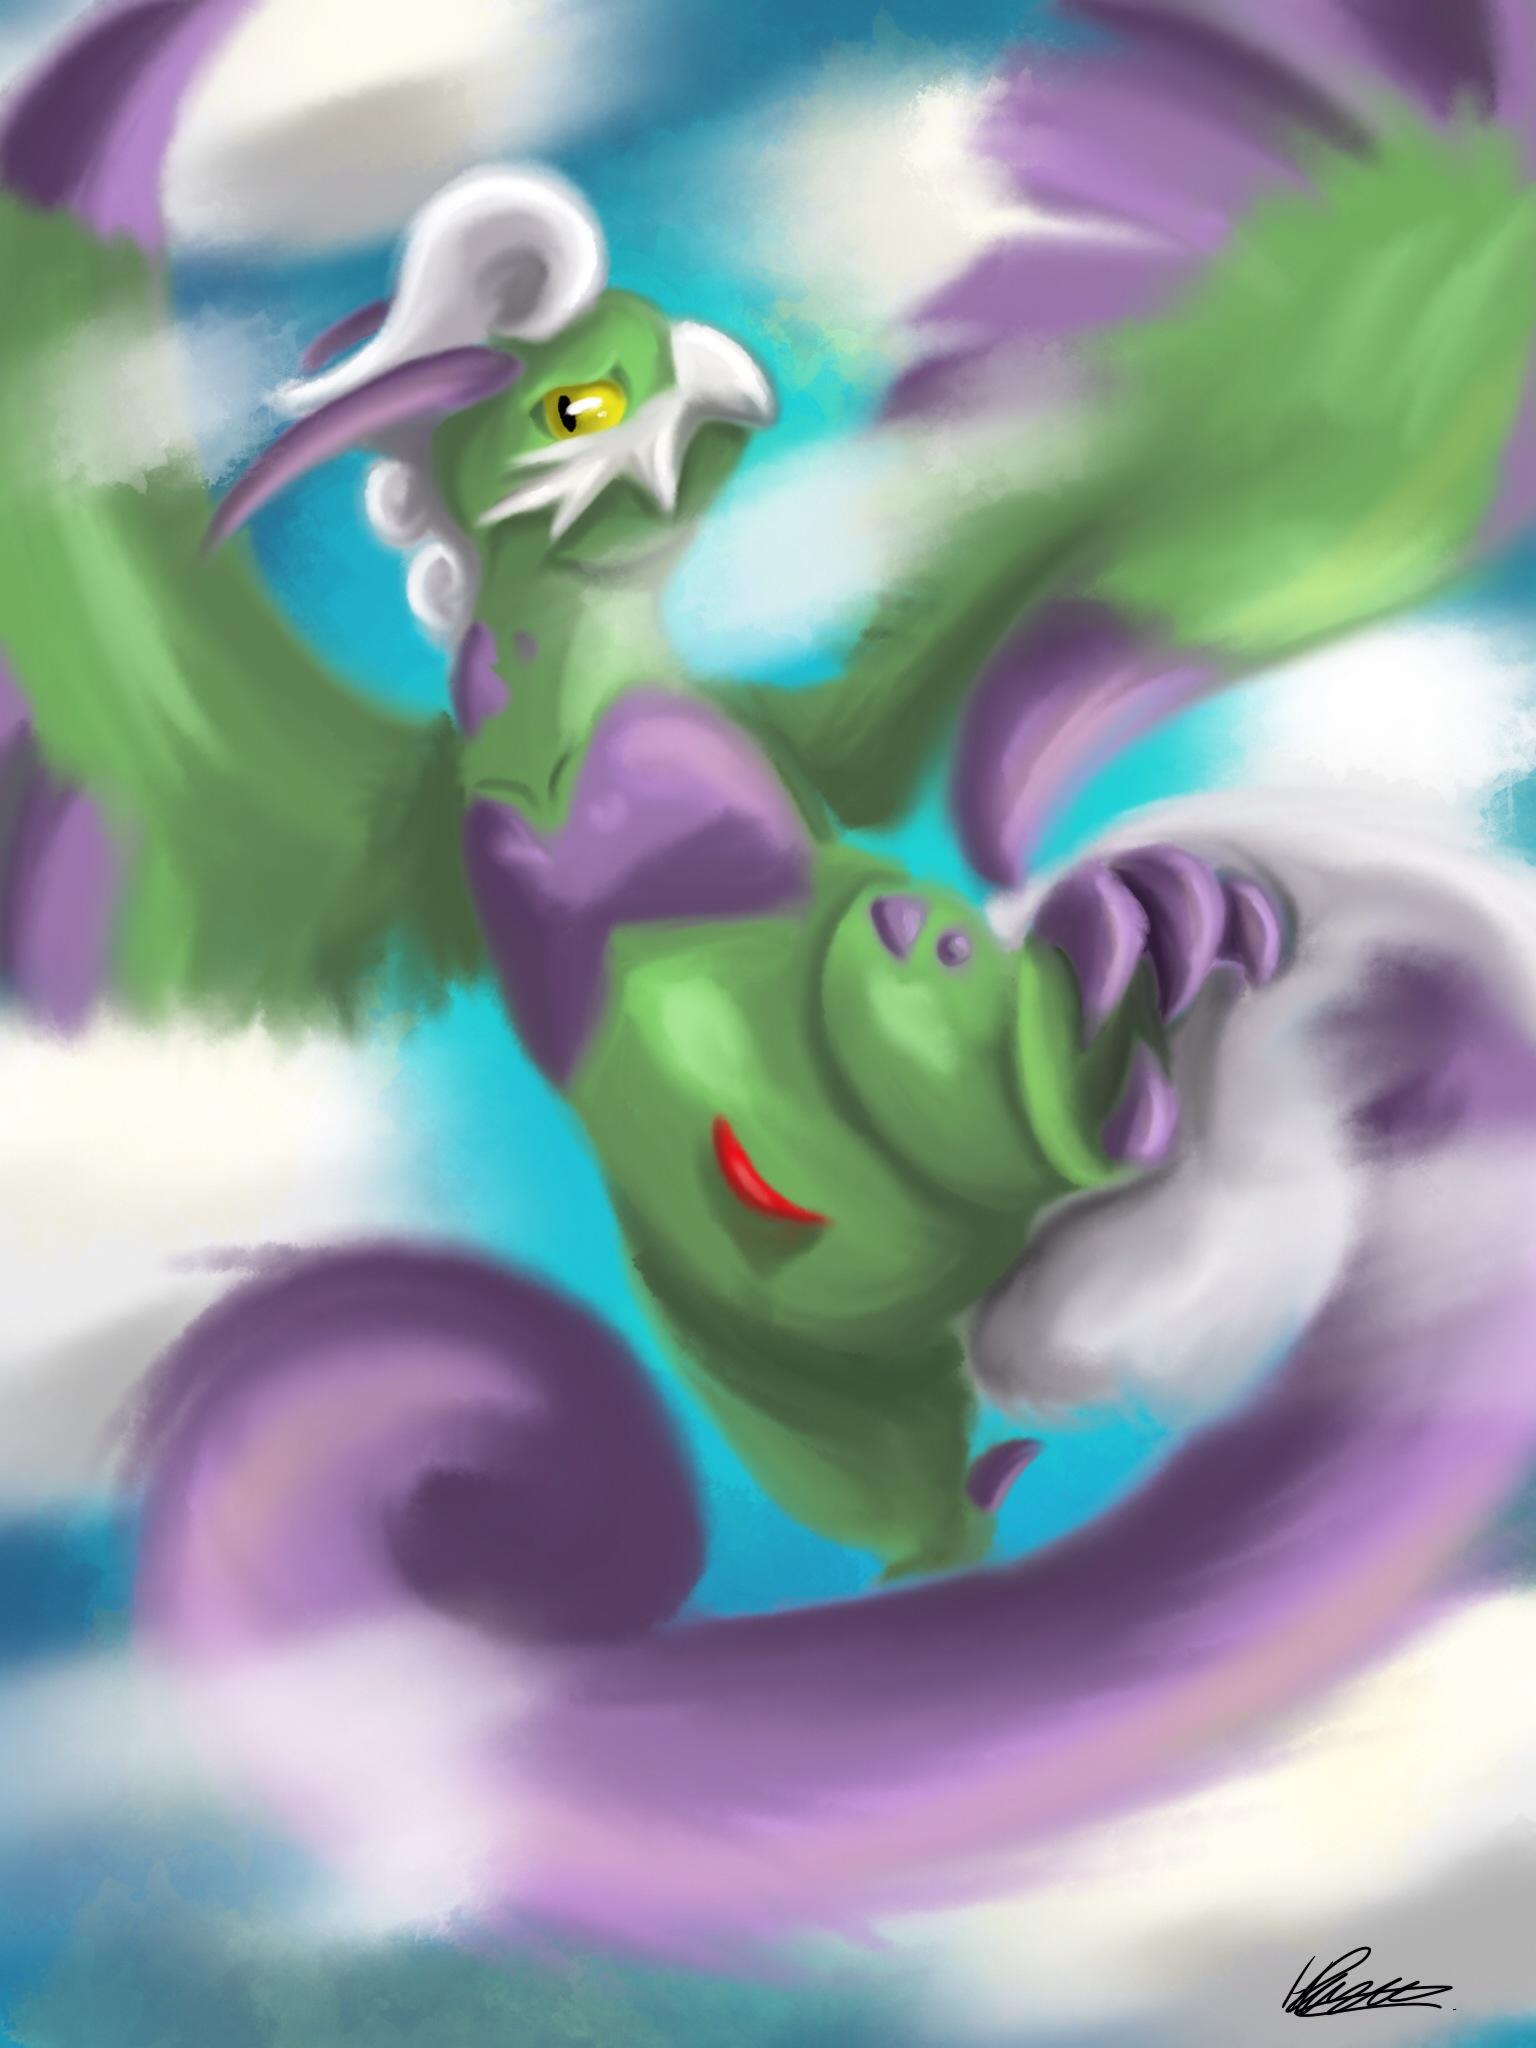 tornadus therian form